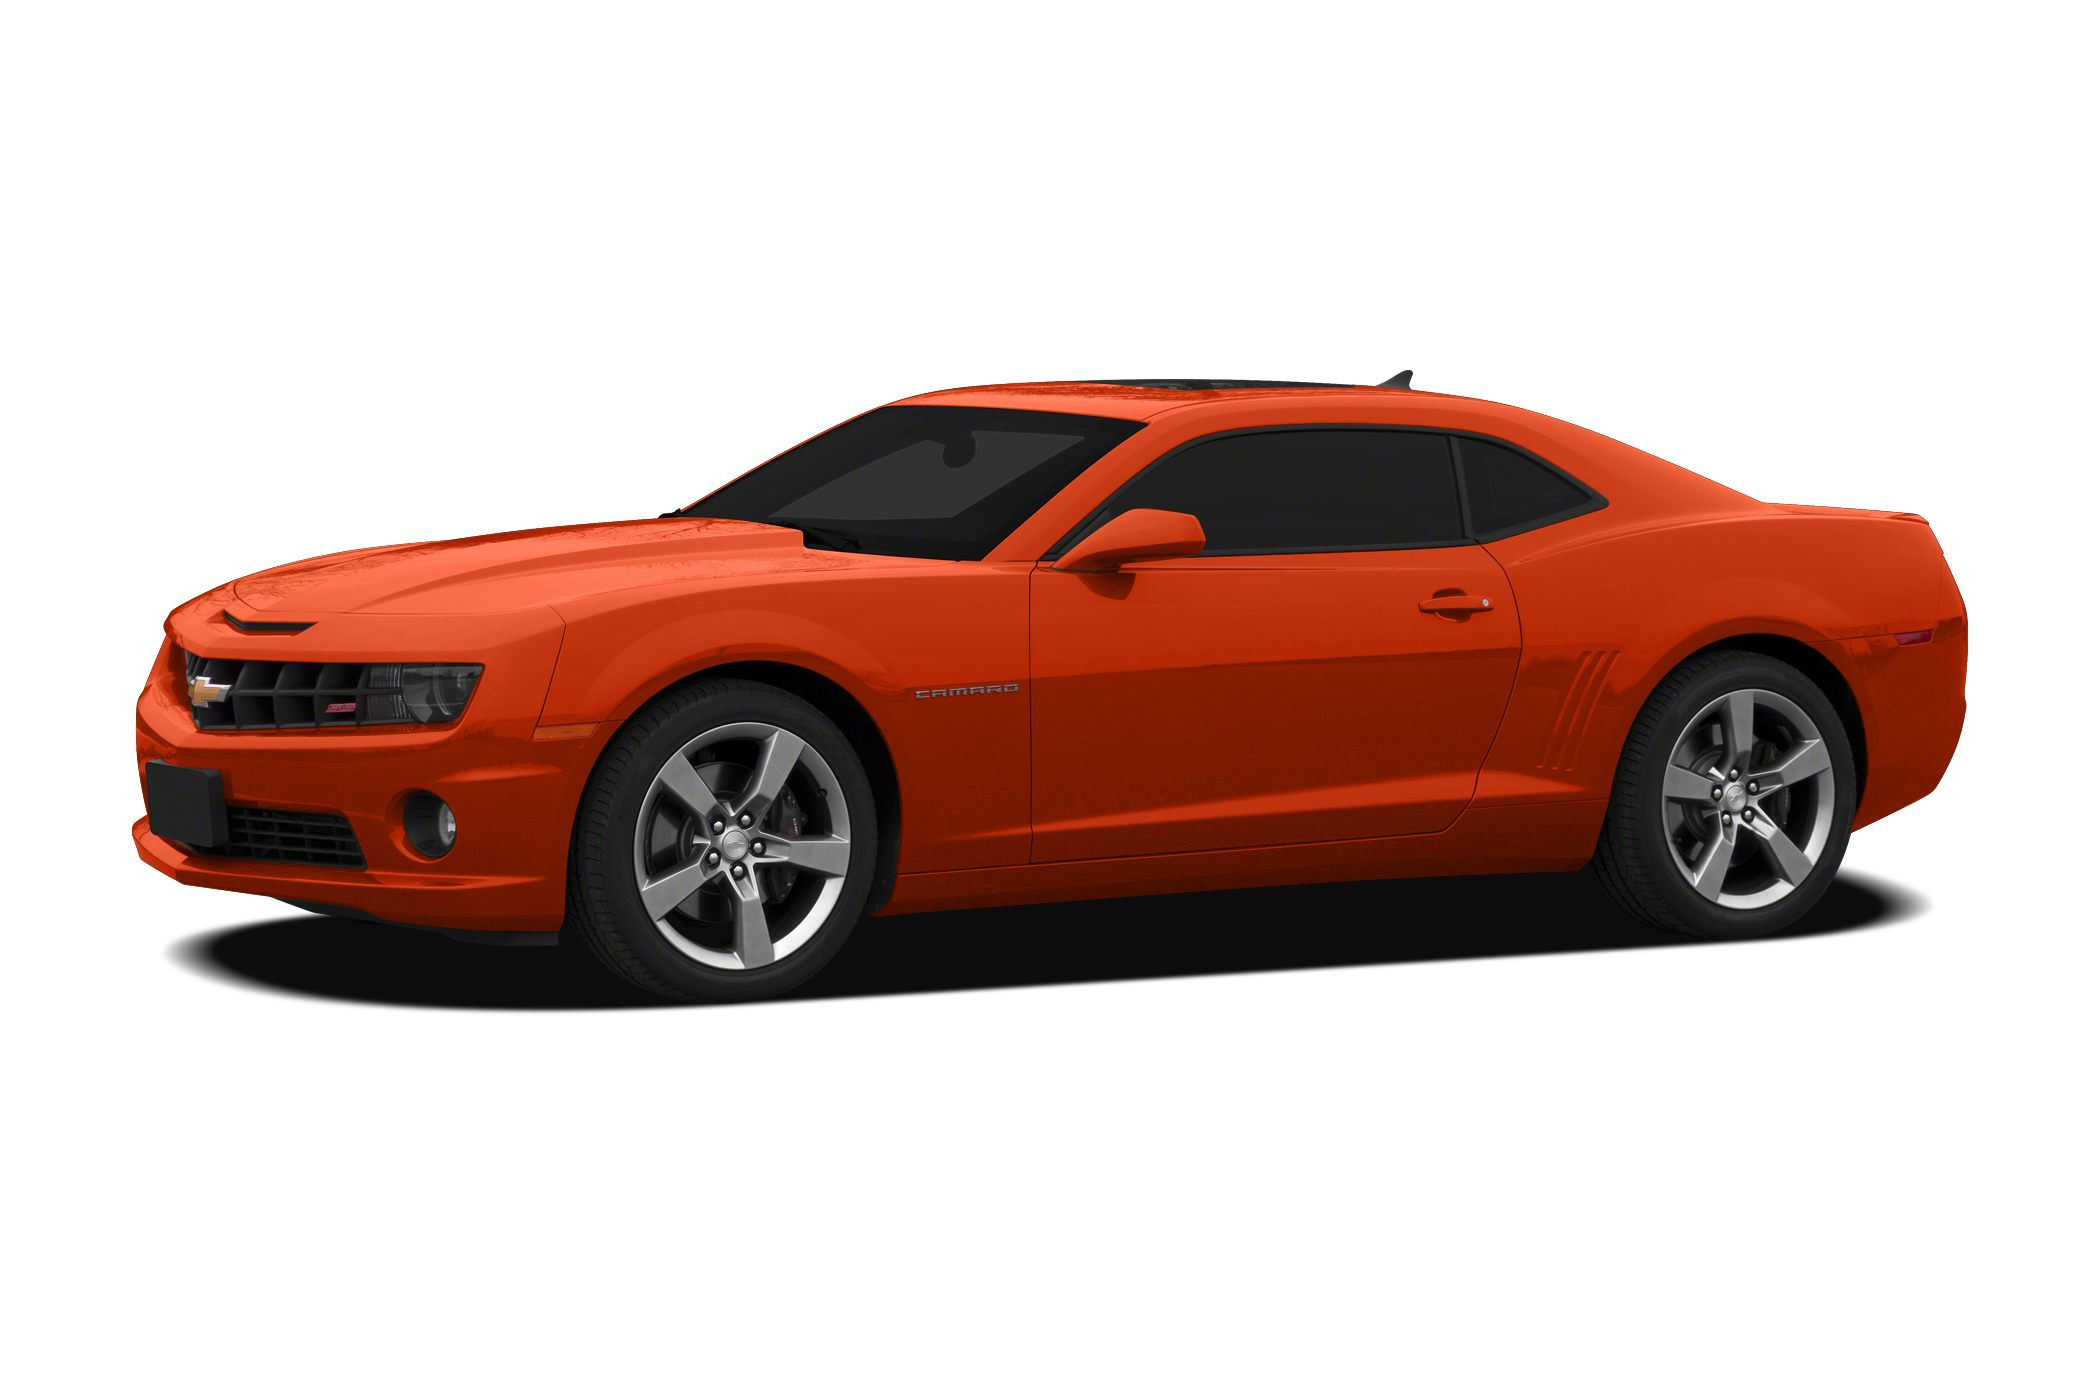 2010 Chevrolet Camaro 2SS Coupe for sale in Connellsville for $24,988 with 25,861 miles.